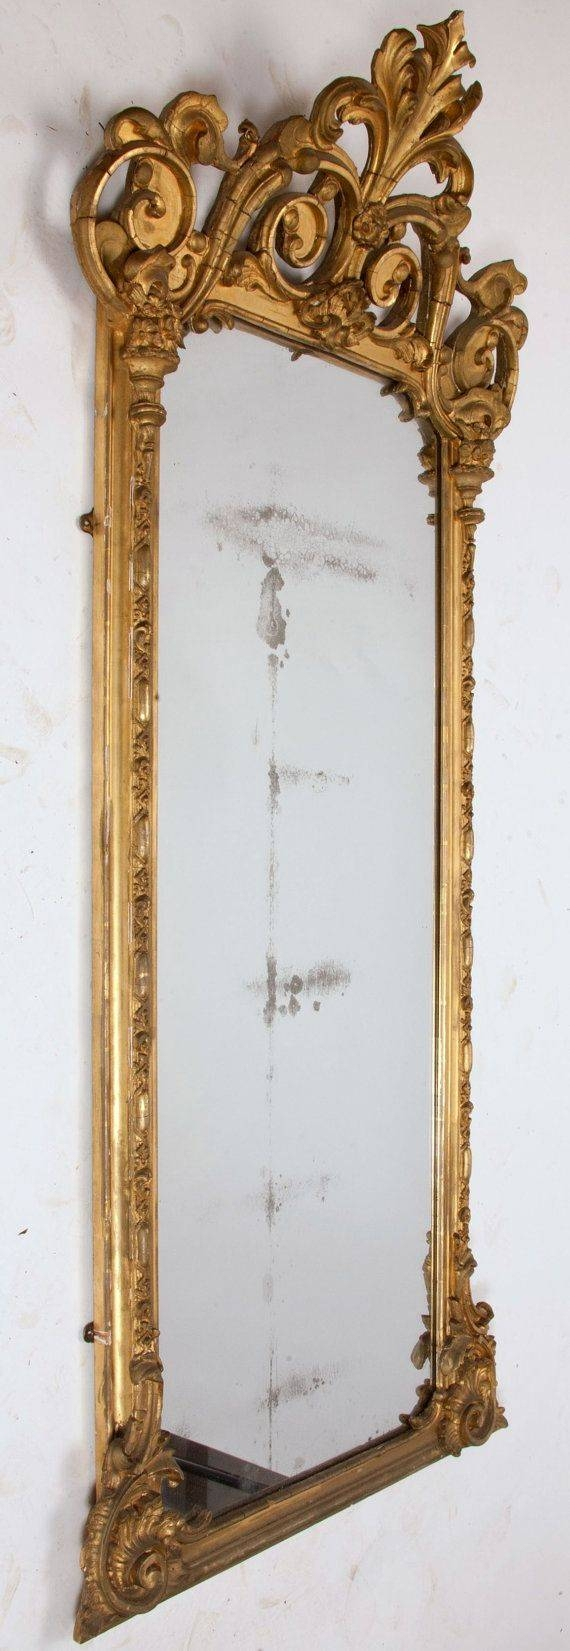 Top 25+ Best Large Gold Mirror Ideas On Pinterest | Painting Throughout Big Vintage Mirrors (View 22 of 25)